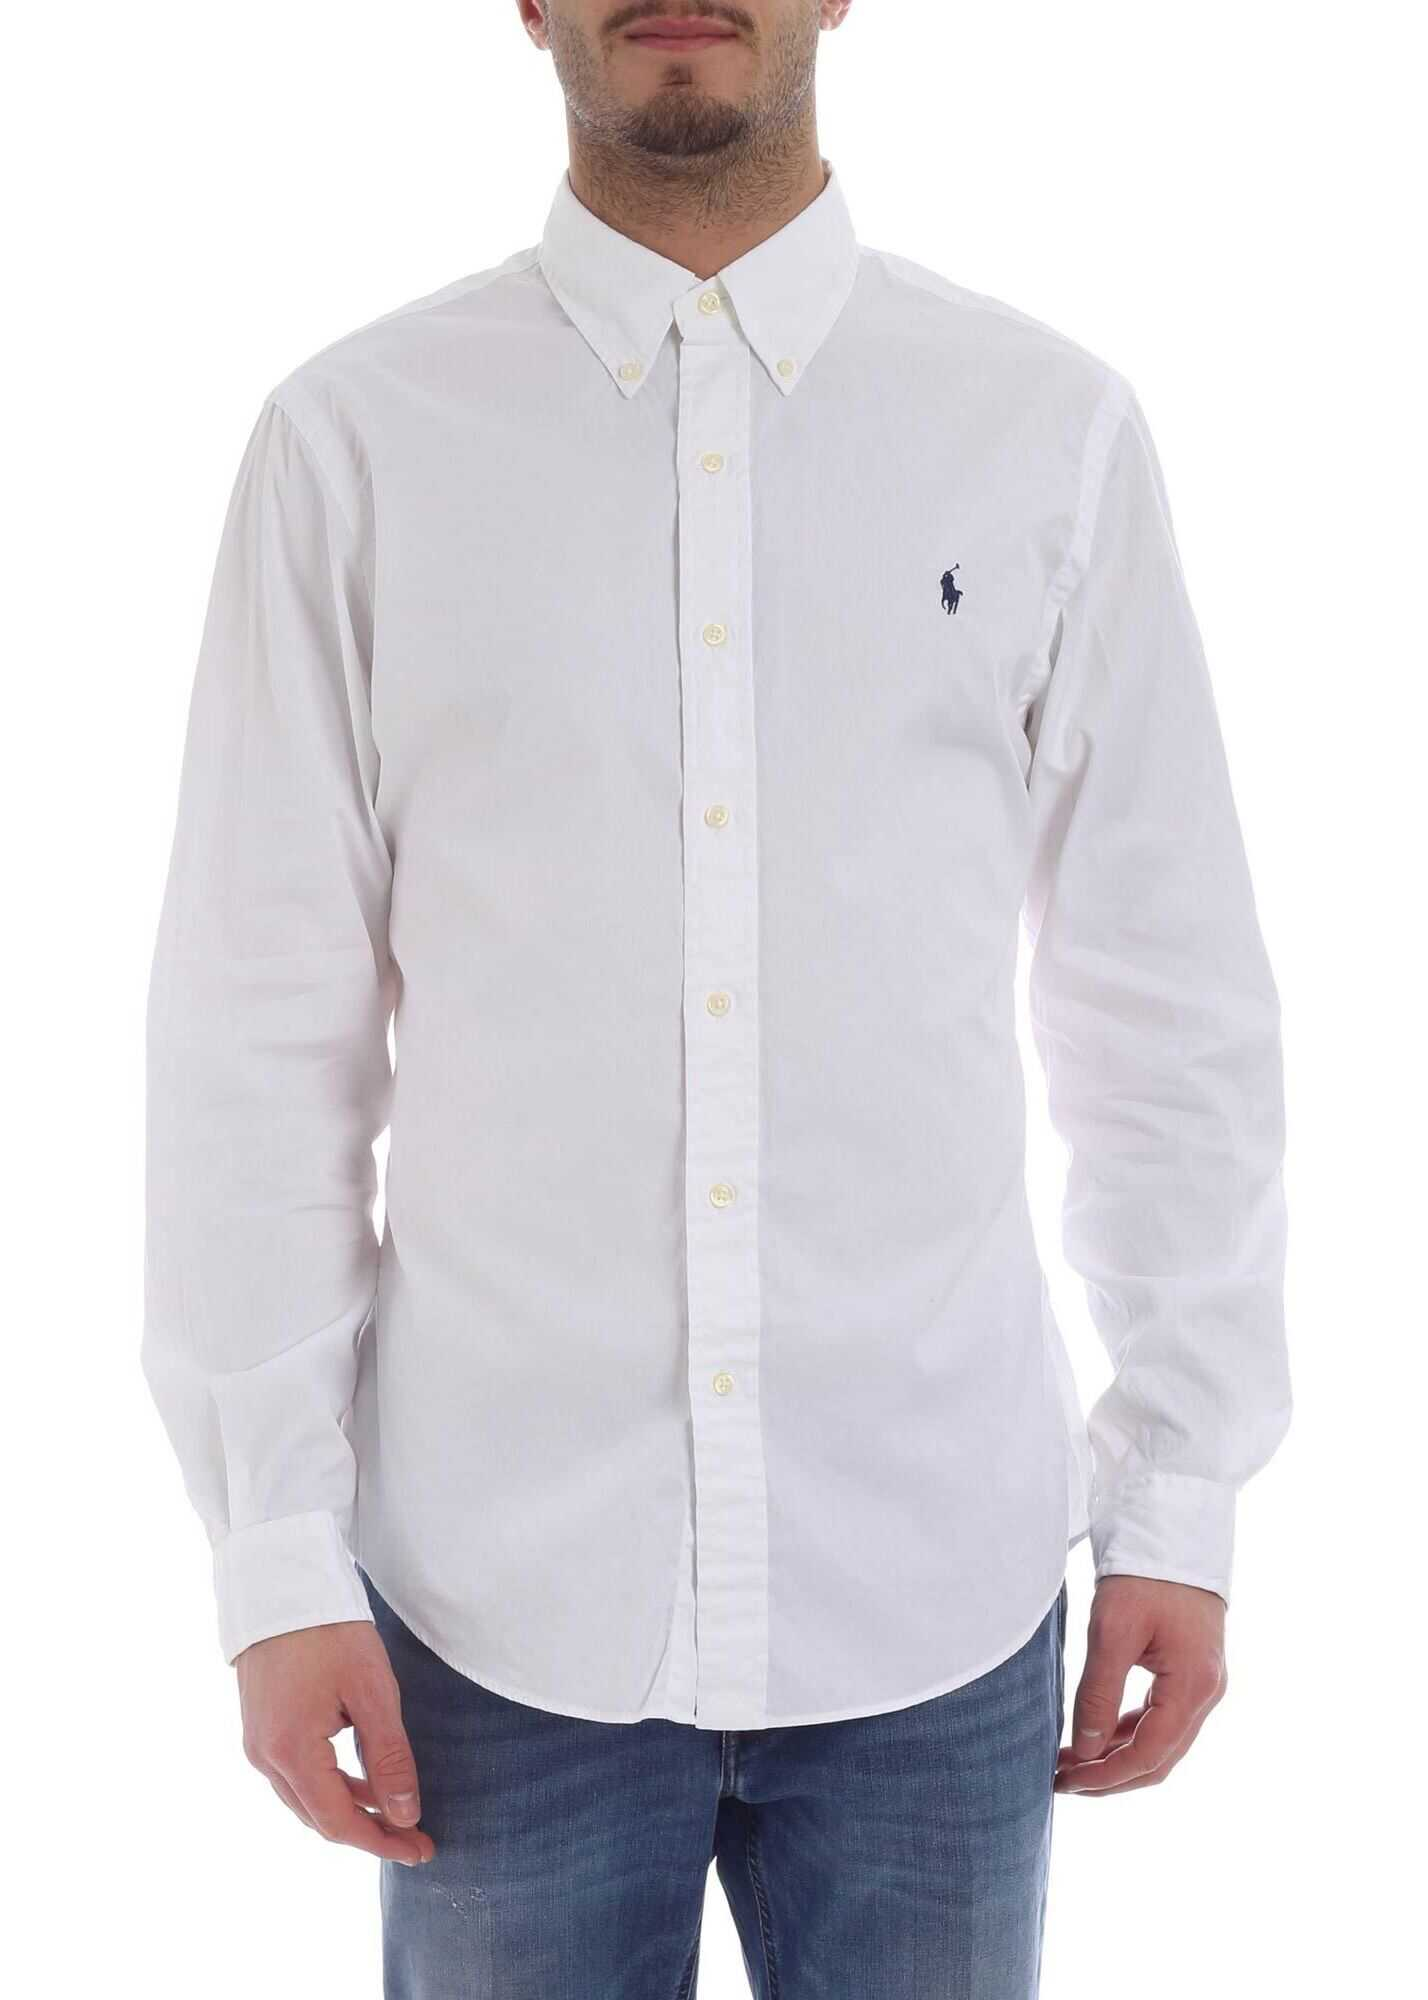 Ralph Lauren White Shirt With Blue Logo Embroidery White imagine